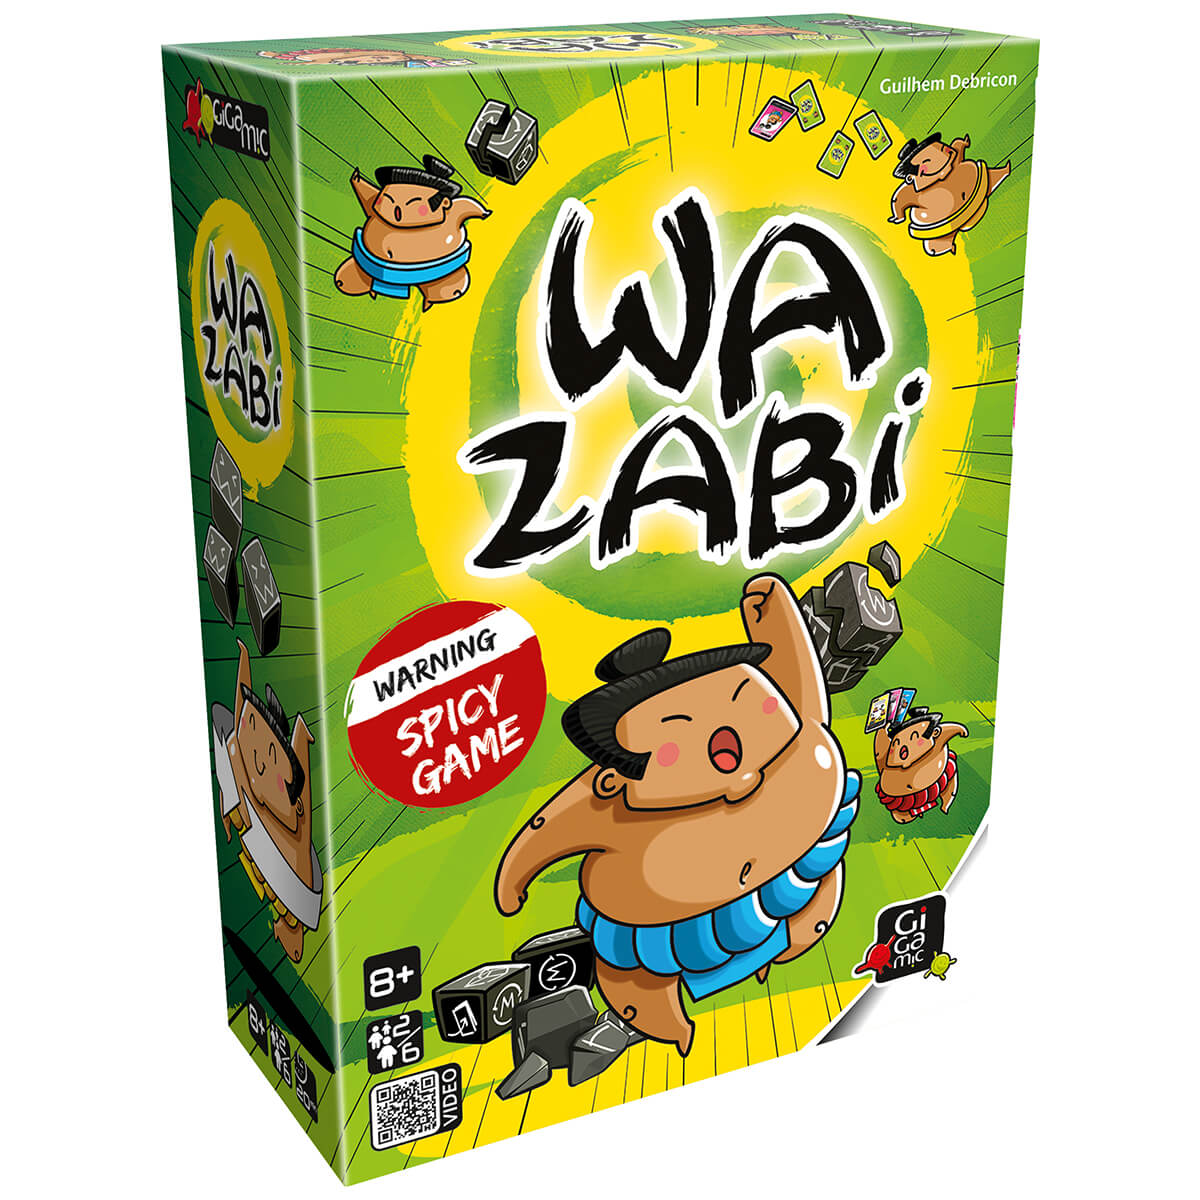 Gigamic Wazabi GFUW Board Game